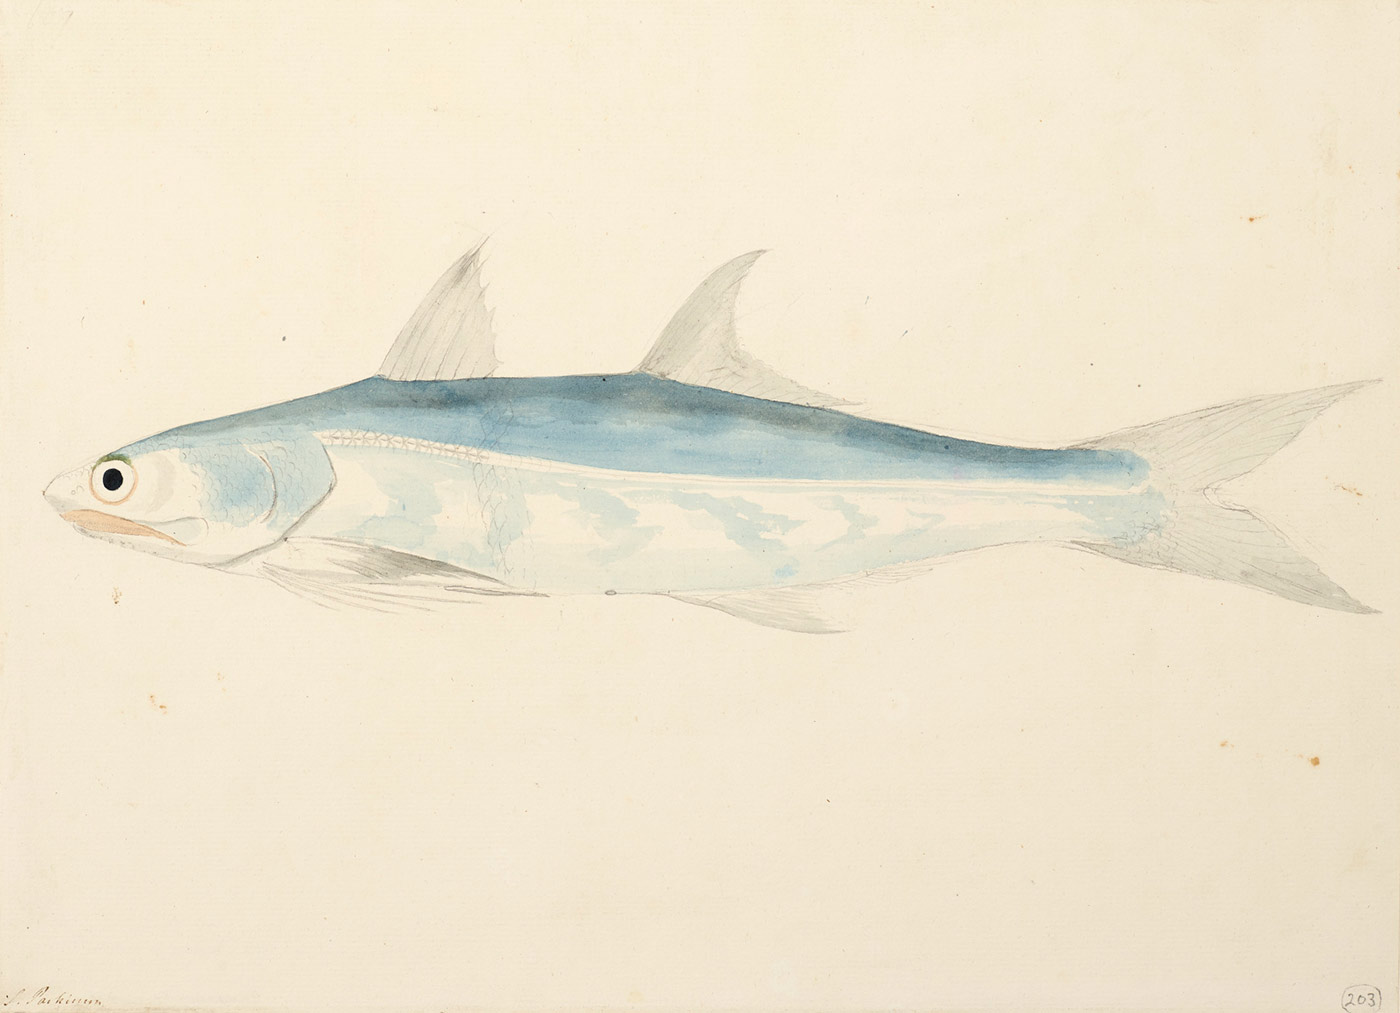 Drawing and watercolour of a fish with a long tapered body. - click to view larger image